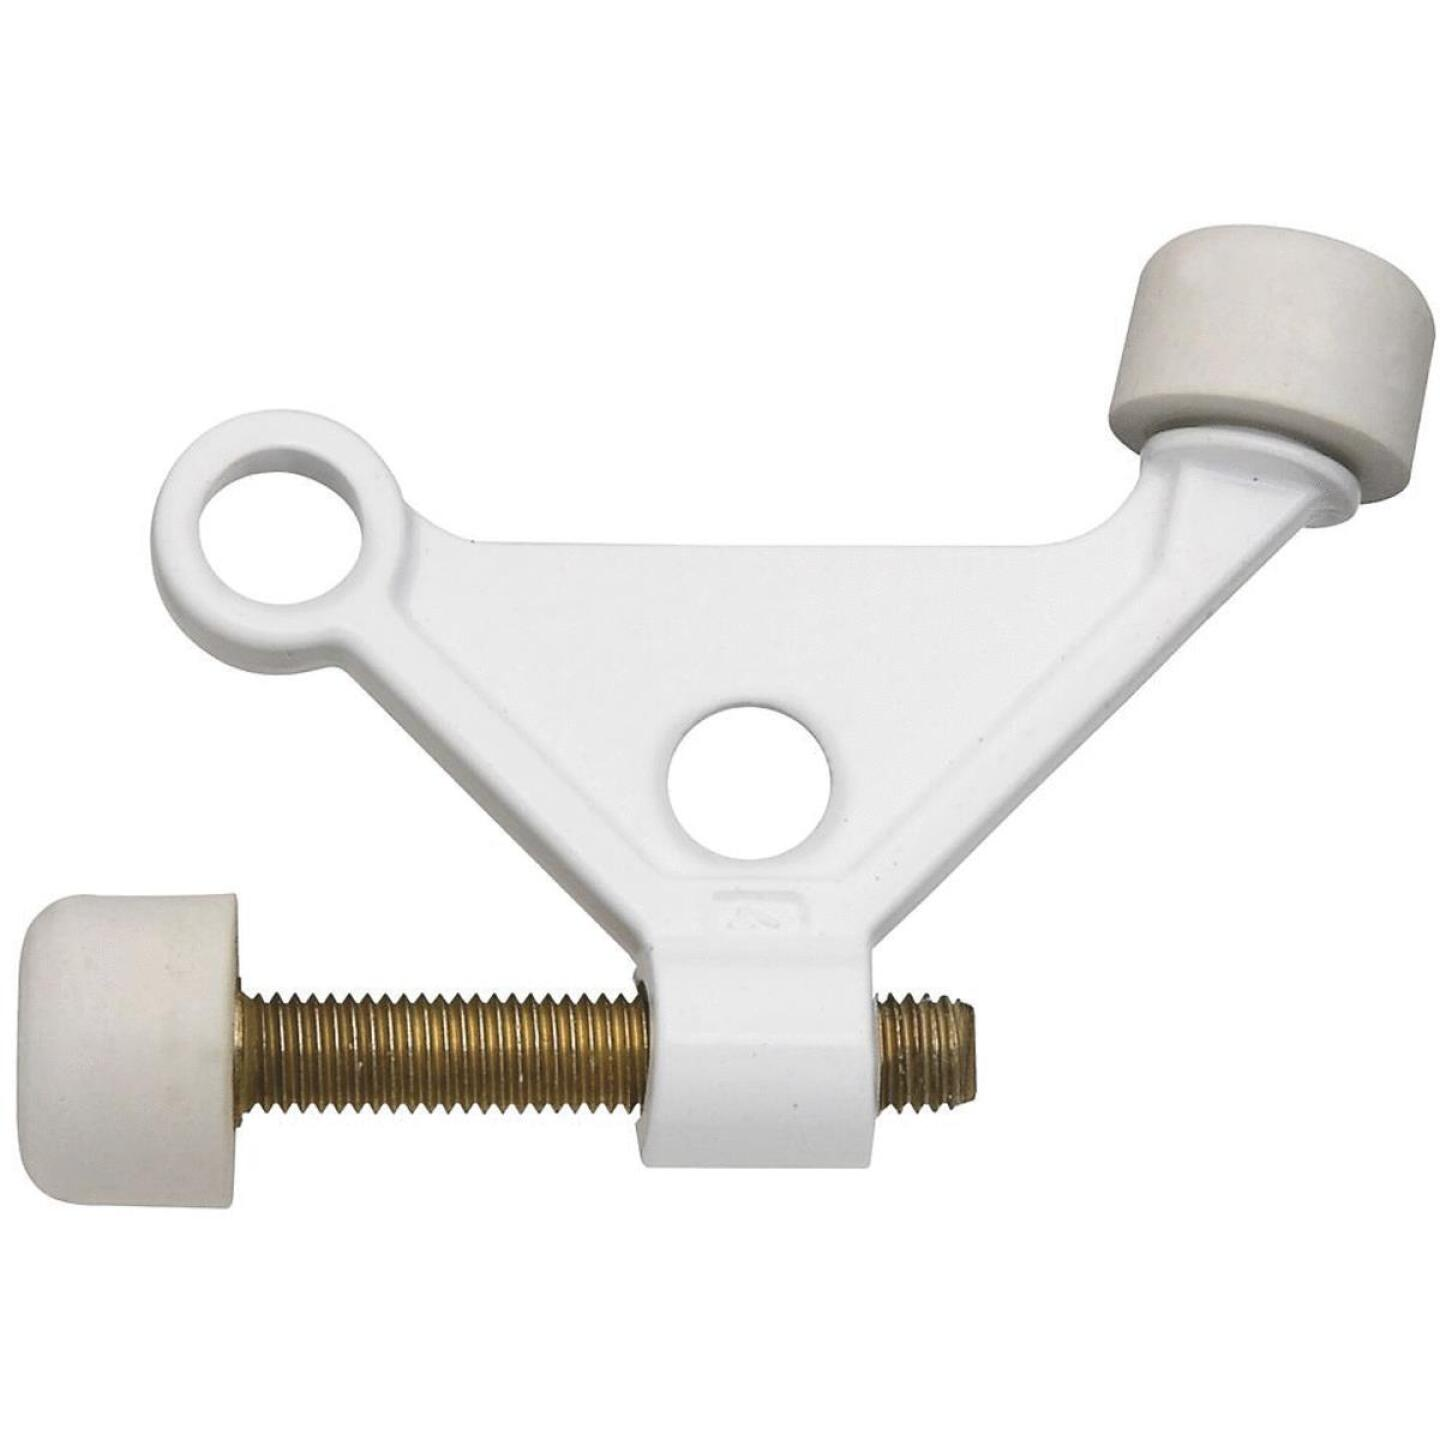 National White Zinc Hinge Pin Door Stop Image 1